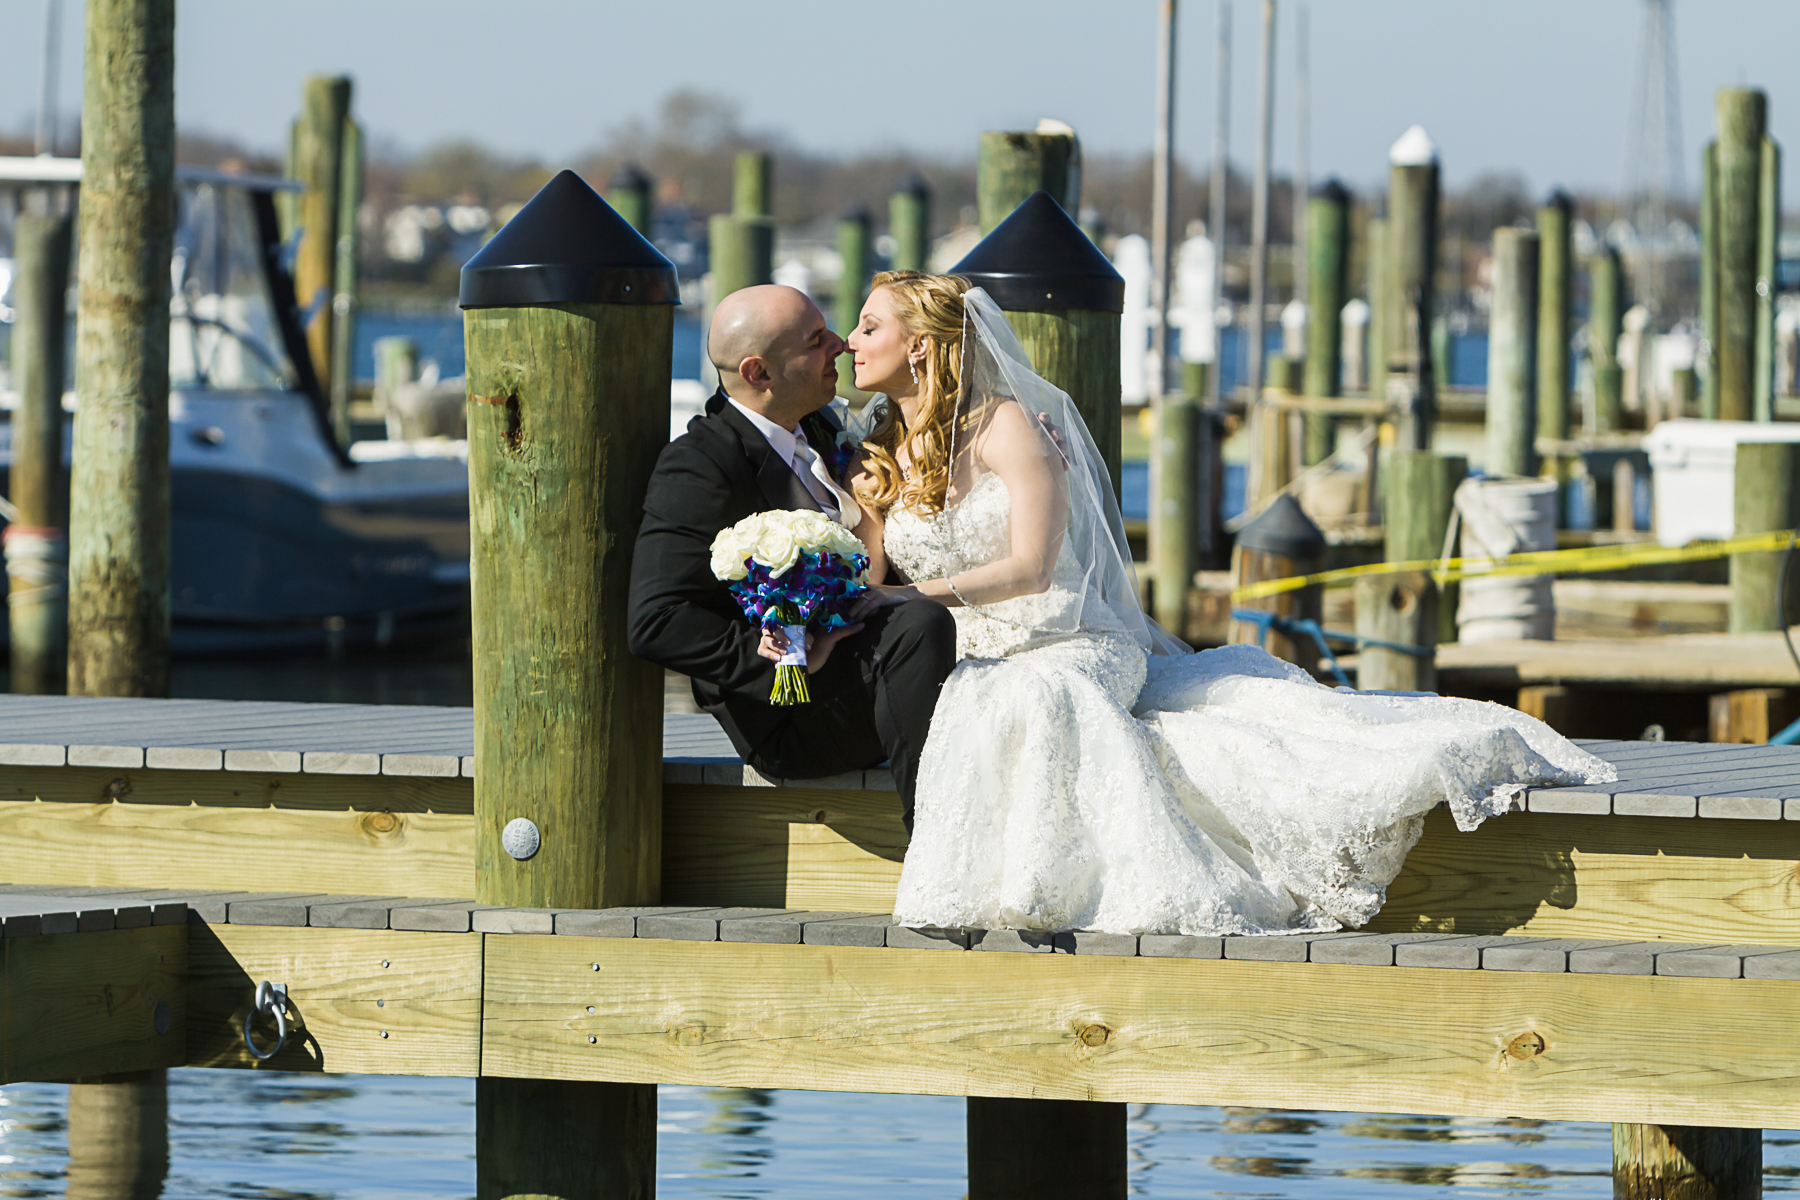 Clarks Landing Yacht Club | Point Pleasant, New Jersey | Adrienne & Stan's Wedding | David Eric Studio of Photography